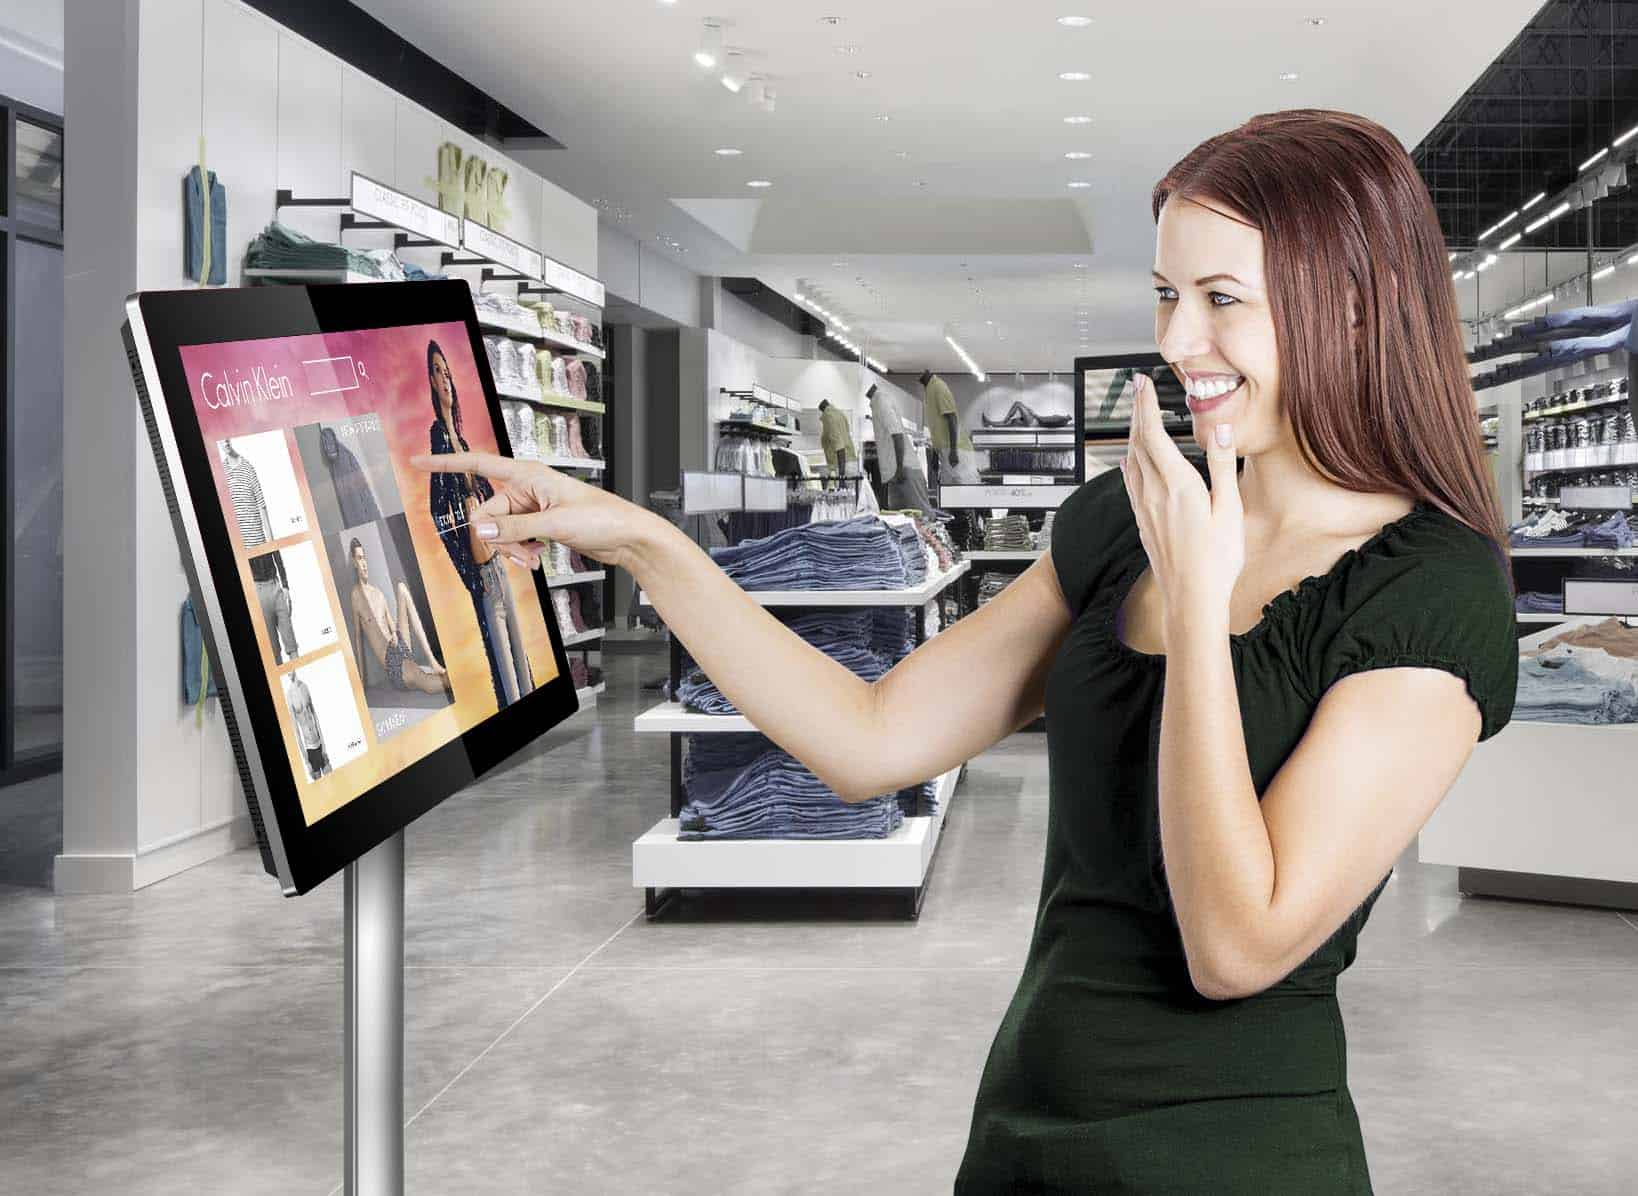 How to effectively use a Touch Screen in Retail - Digital Signage Blog